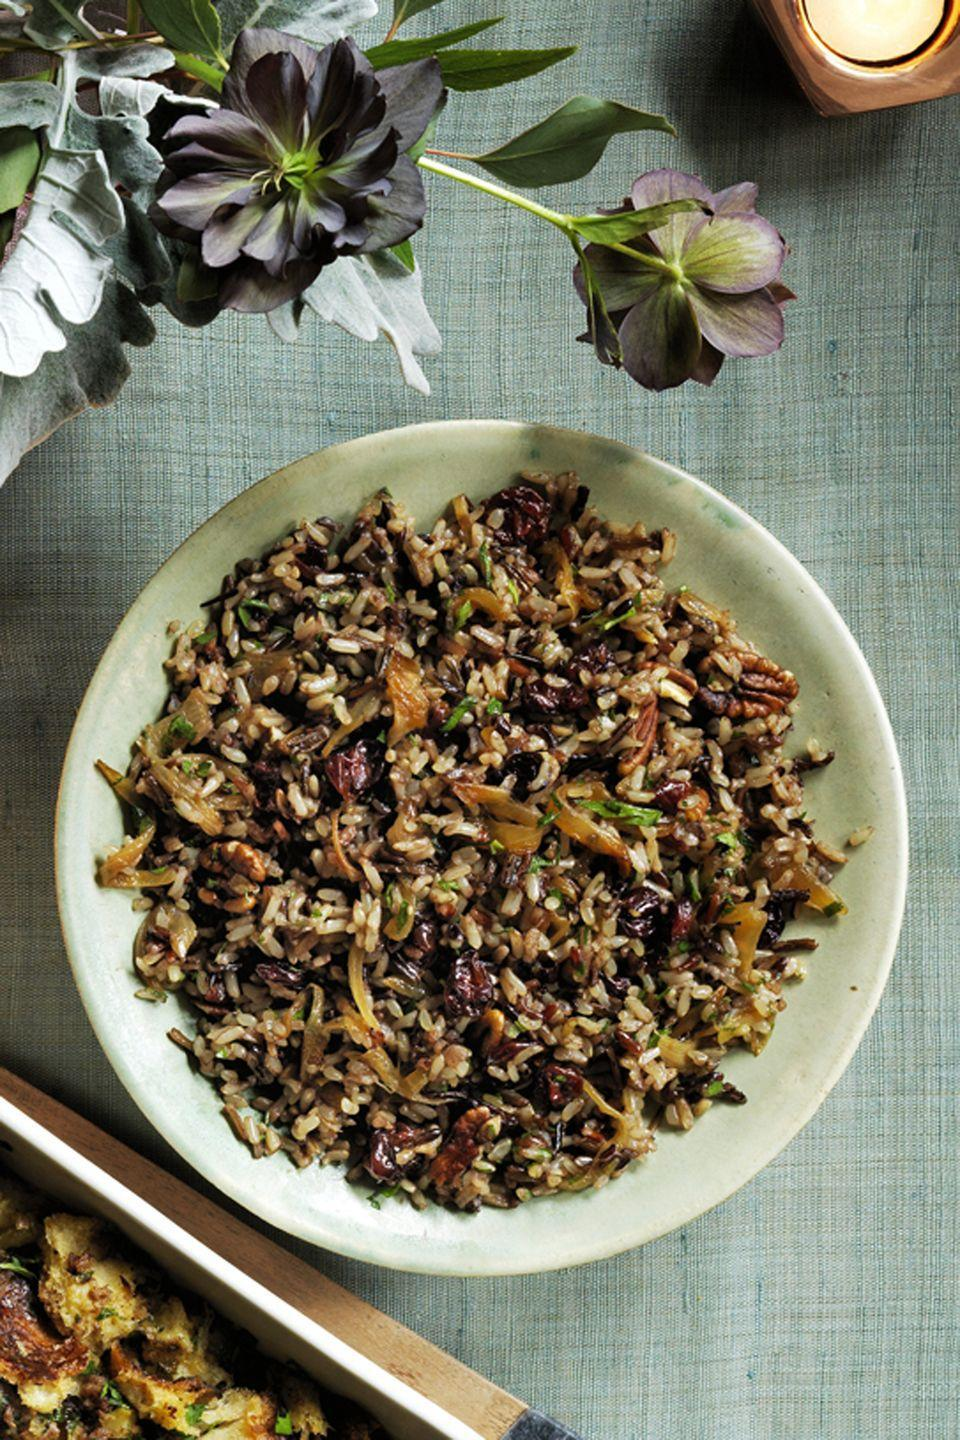 """<p>Sweeten your side of rice with dried cherries and a cinnamon stick for make this pilaf. </p><p><em><strong><a href=""""https://www.womansday.com/food-recipes/food-drinks/recipes/a60485/wild-rice-and-cherry-pilaf-recipe/"""" rel=""""nofollow noopener"""" target=""""_blank"""" data-ylk=""""slk:Get the Wild Rice and Cherry Pilaf recipe."""" class=""""link rapid-noclick-resp"""">Get the Wild Rice and Cherry Pilaf recipe.</a></strong></em> </p>"""